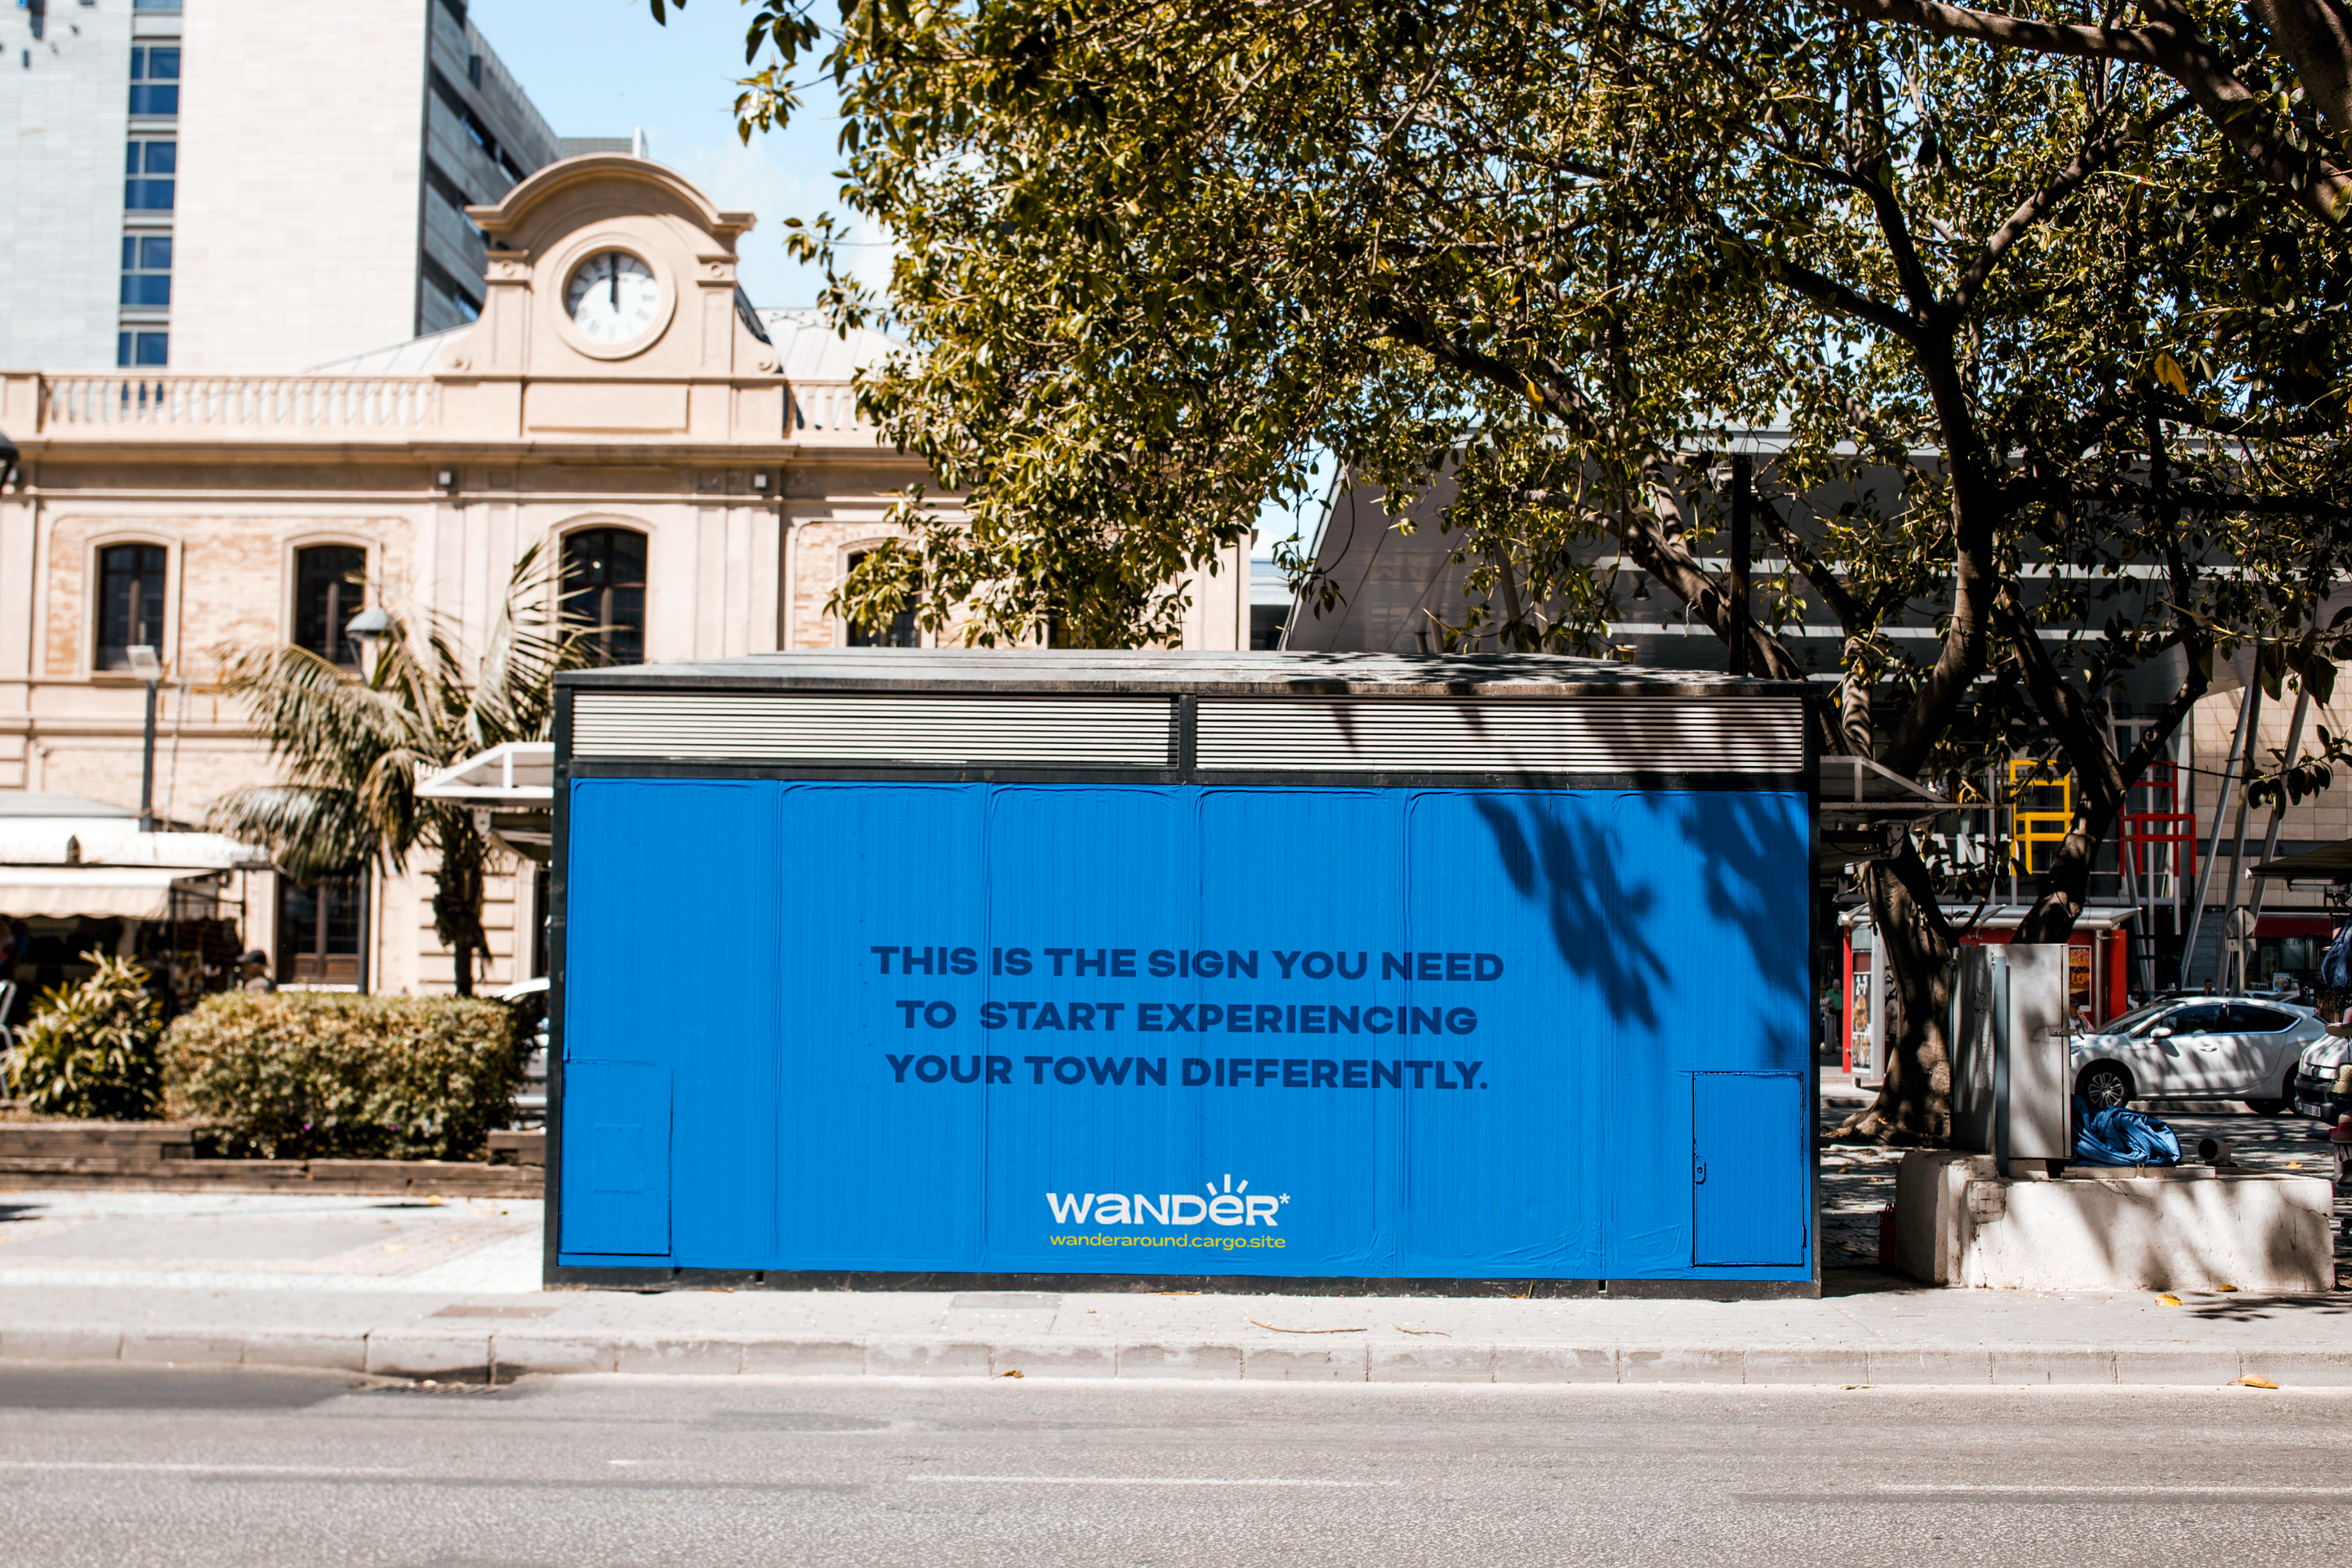 """Image depicts a city landscape with a kiosk in the middle, the kiosk has a sign that promotes the game Wander and says """"this is the sign you need to start experiencing your town."""" The sign is blue.  There's a tree and an old building with a cloc"""